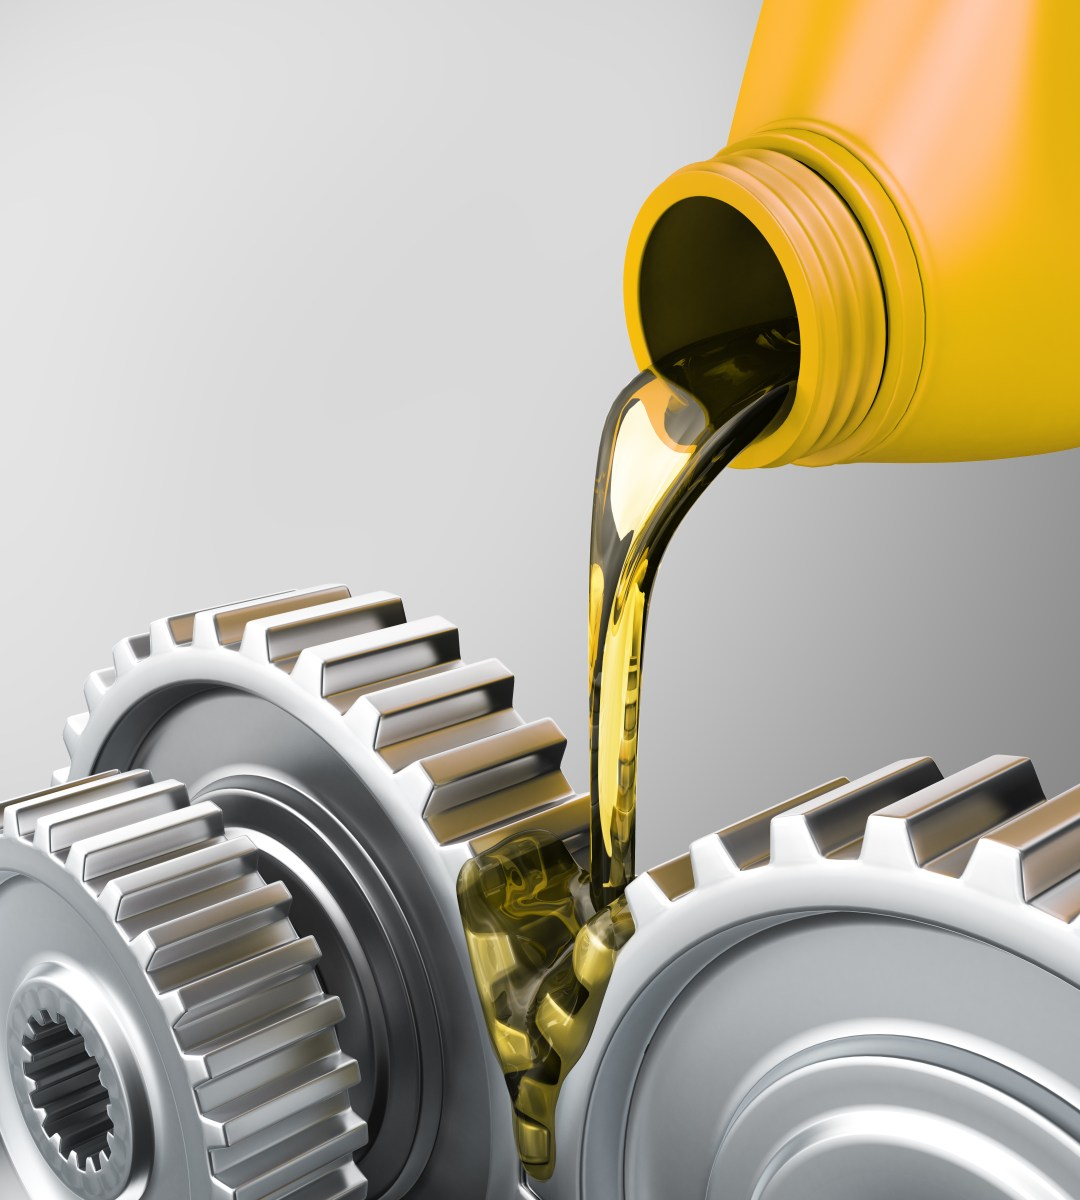 What makes Lubrication Oil Additive Analysis a challenge for X-ray Fluorescence Analysis?